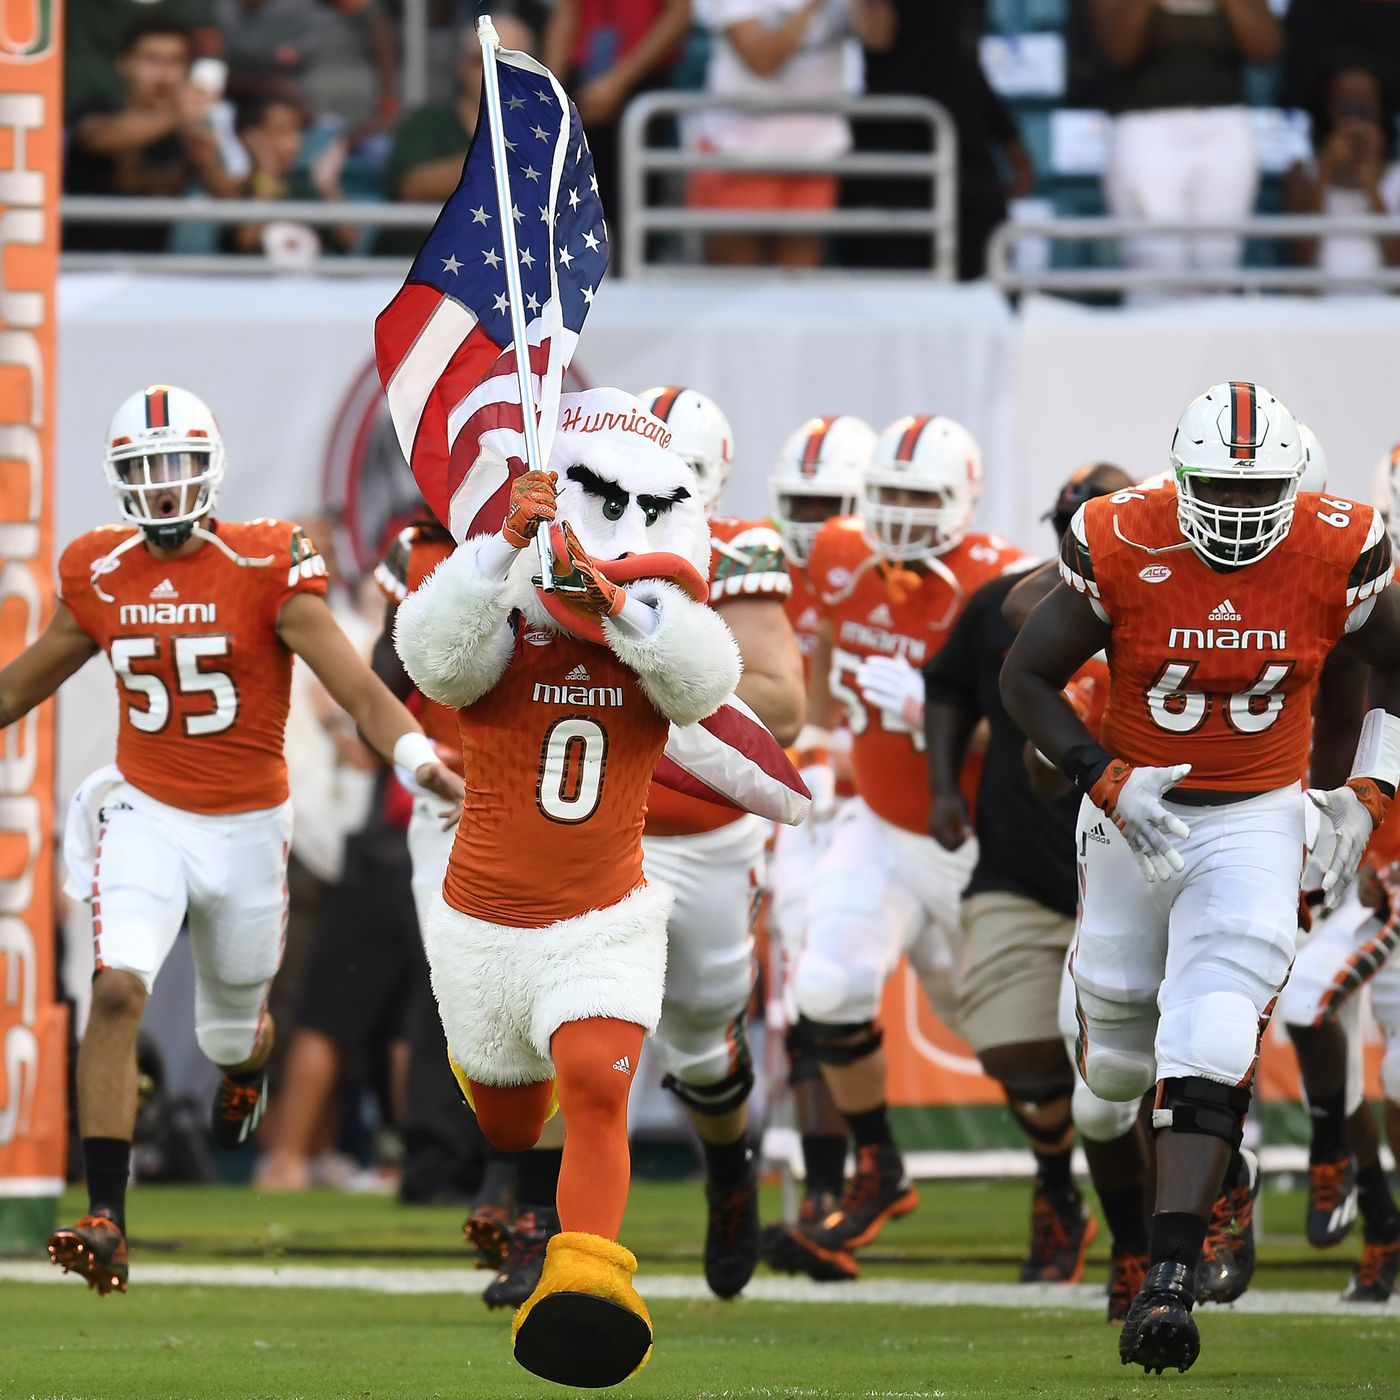 Miami Hurricanes recruit schedule: Week 5 - State of The U